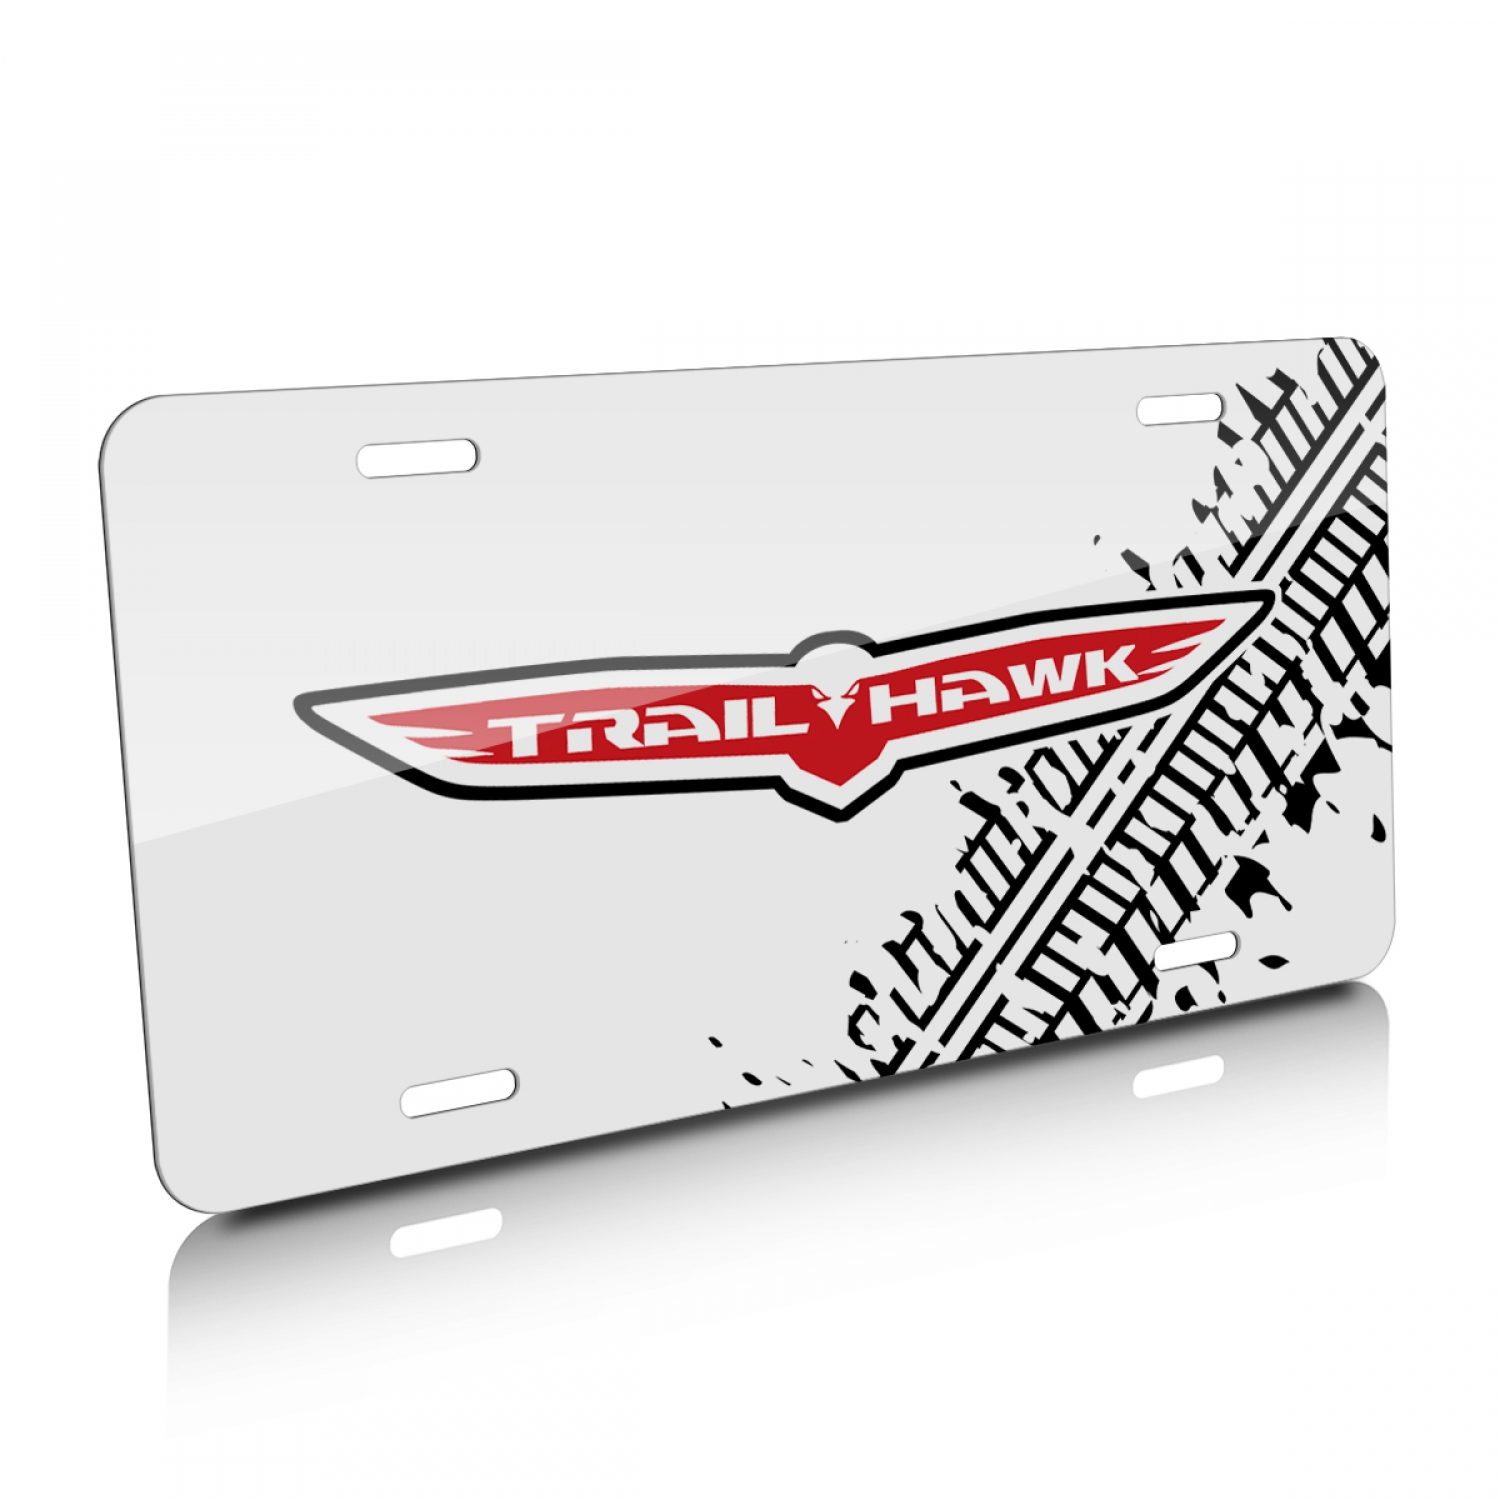 Jeep Trailhawk Tire Mark Graphic White Aluminum License Plate